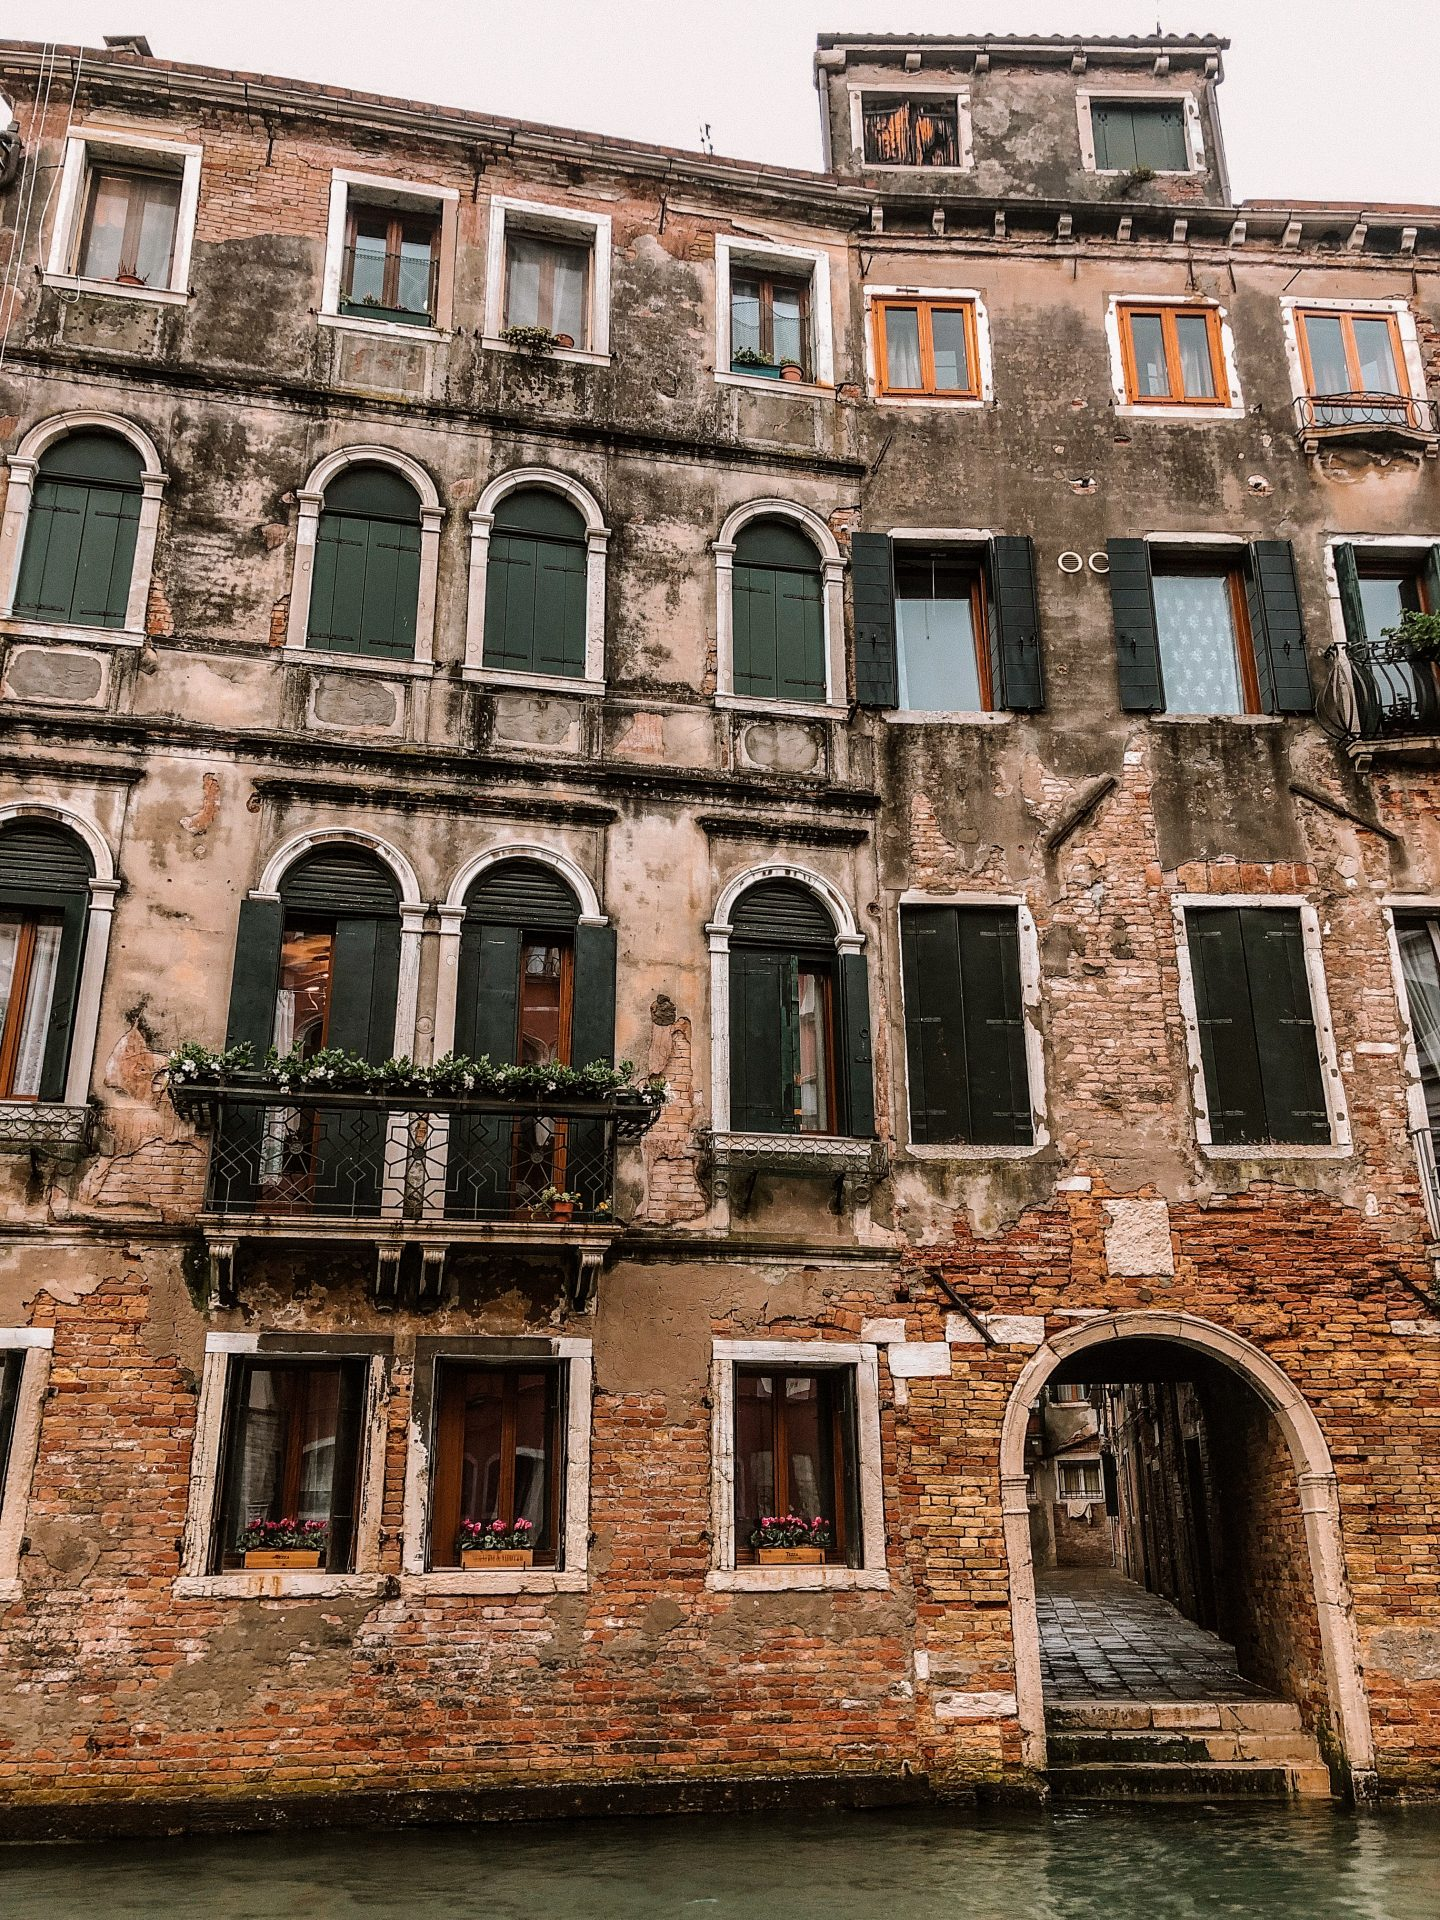 Houses on the canal in Venice, Italy